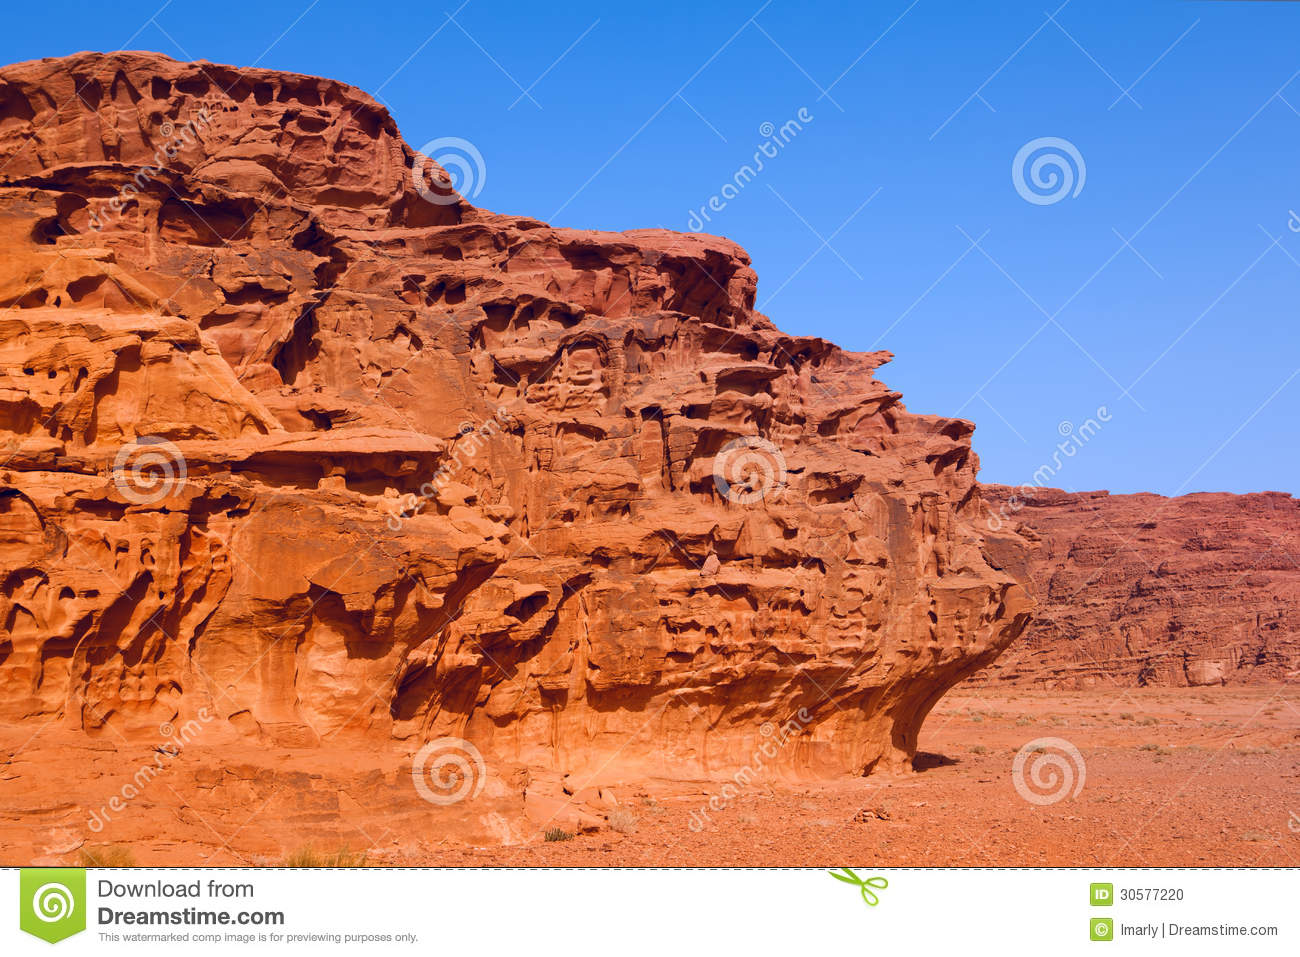 An Unusual Rock Formations In Desert Stock Photo Image